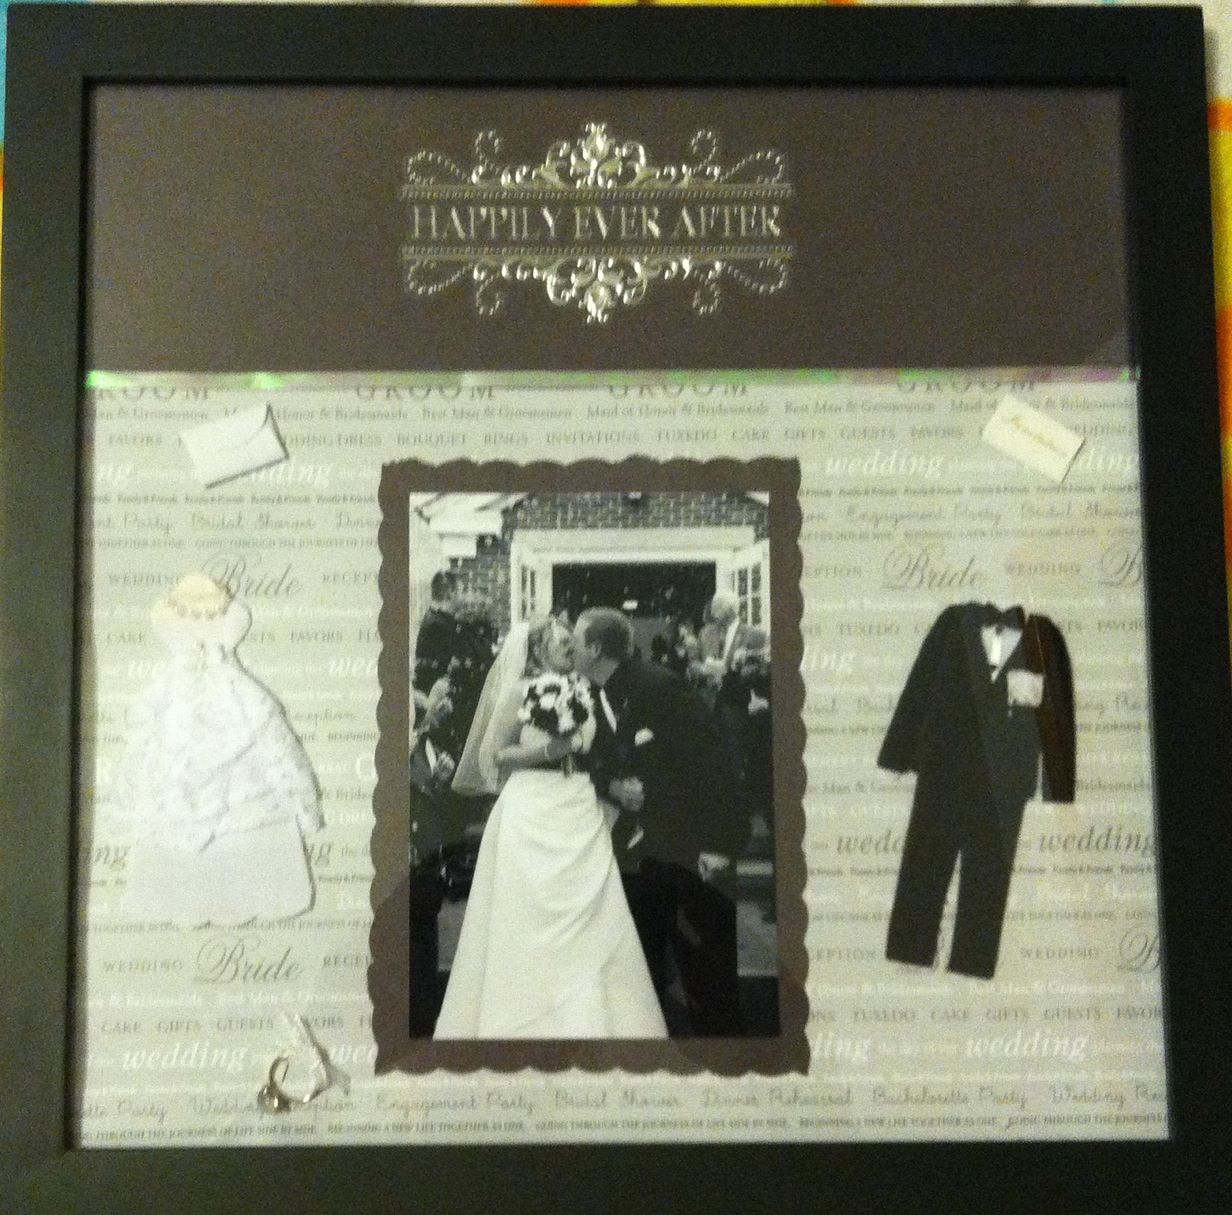 12x12 wedding scrapbook paper - Scrapbook Frame I Made From My Wedding Black White Photo Old Fashioned